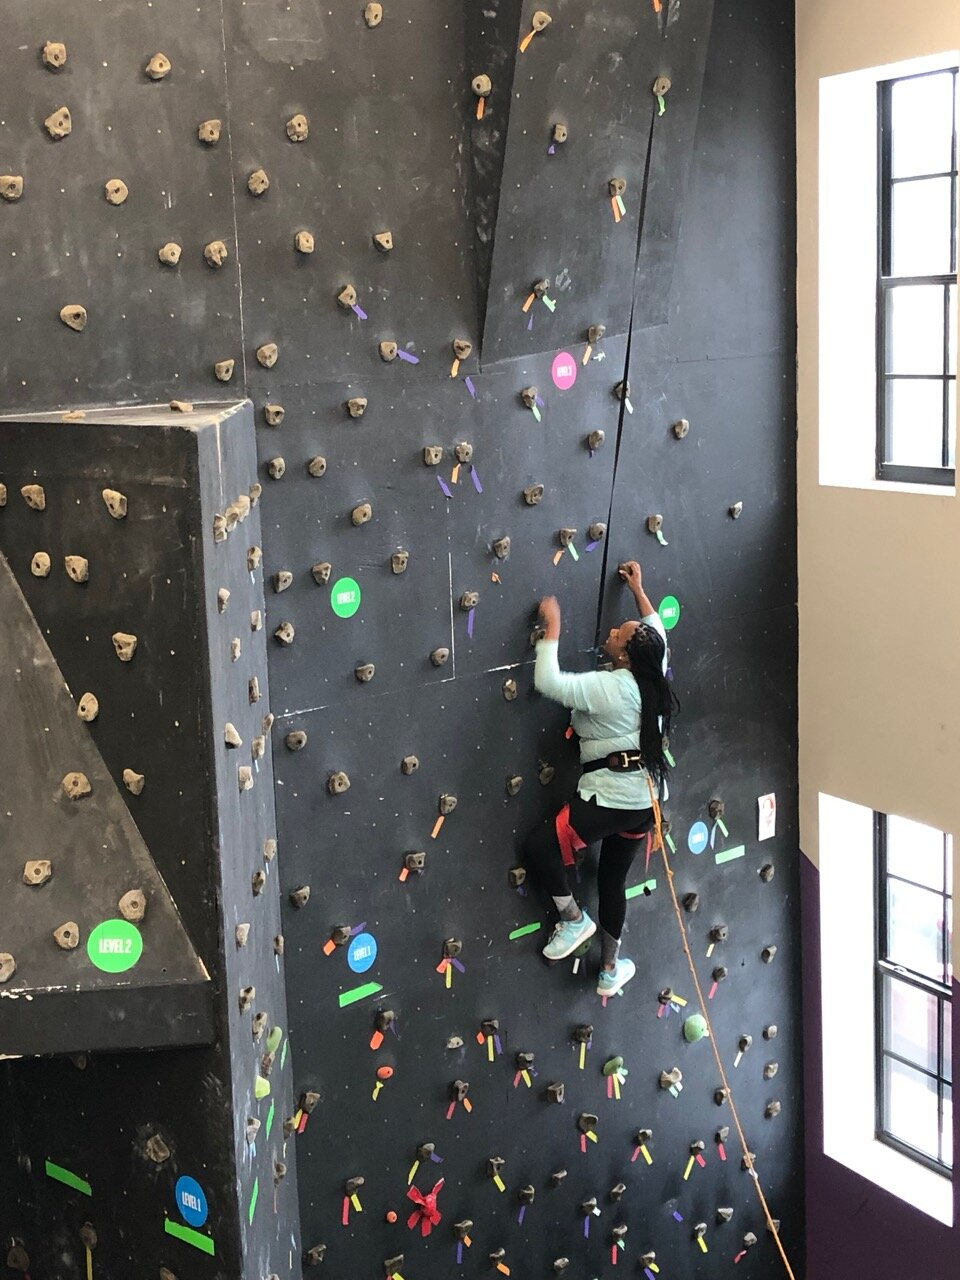 Harnessed climbing helps participants reach new heights